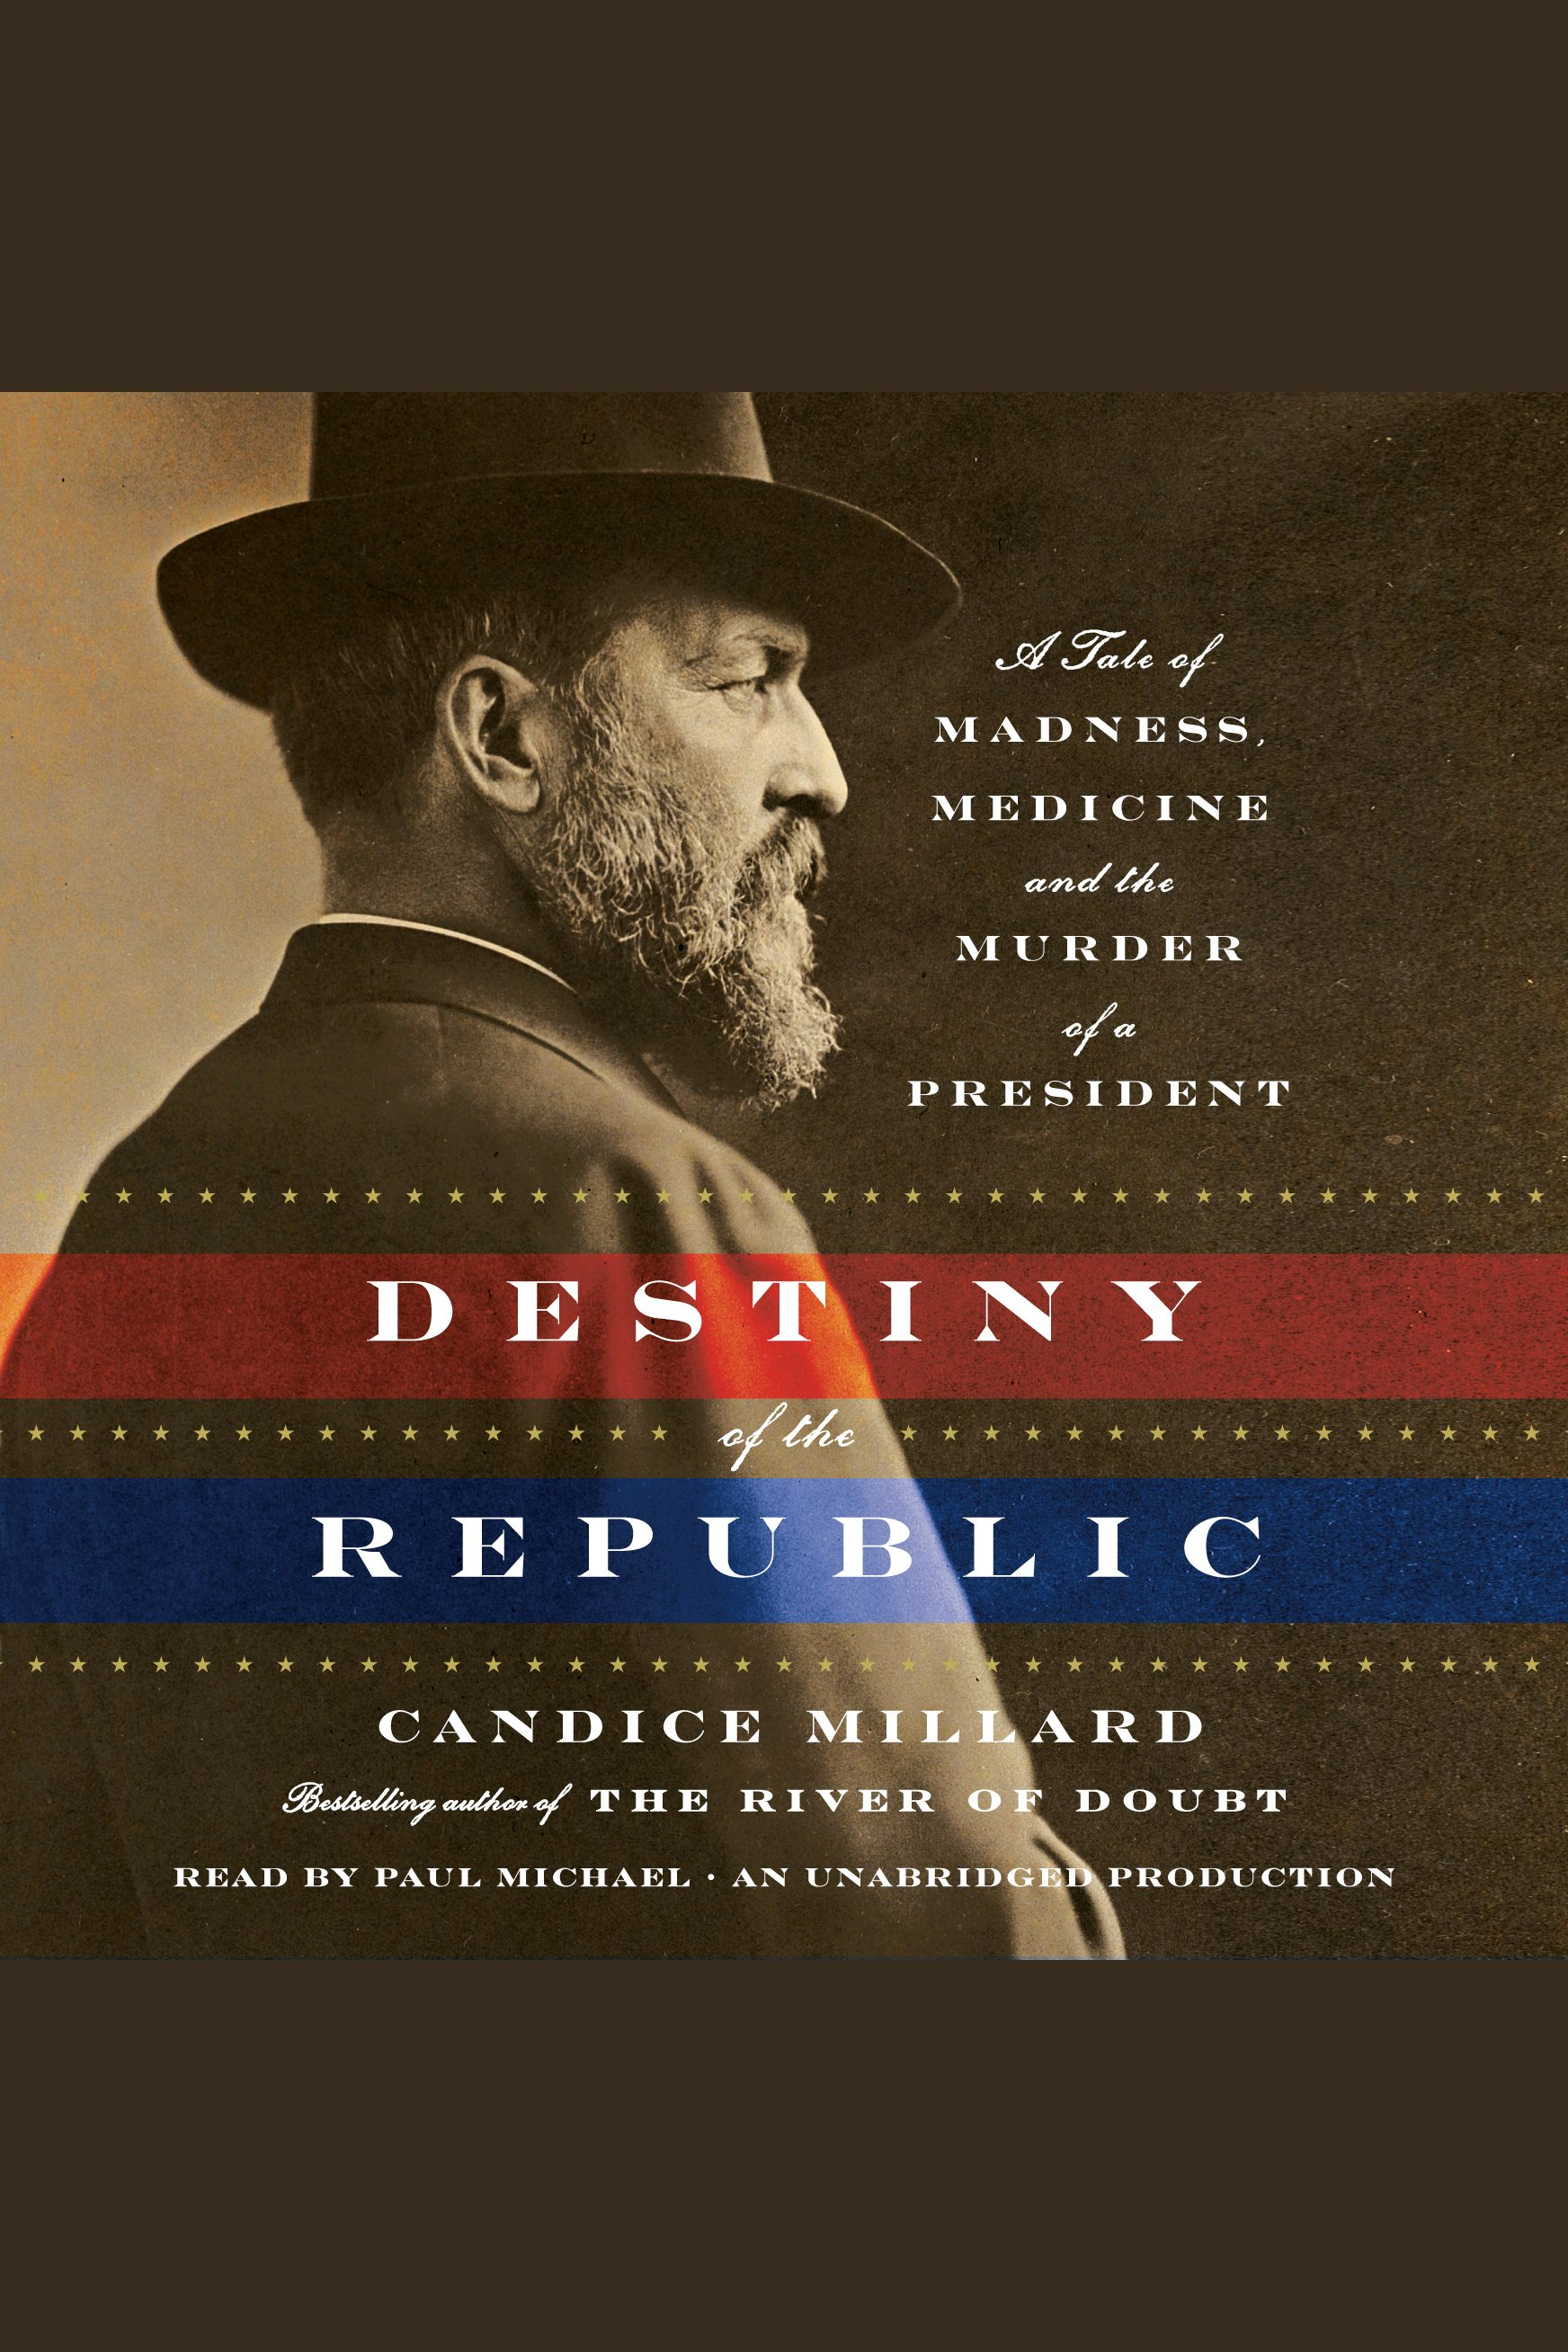 Destiny of the republic a tale of madness, medicine and the murder of a president cover image